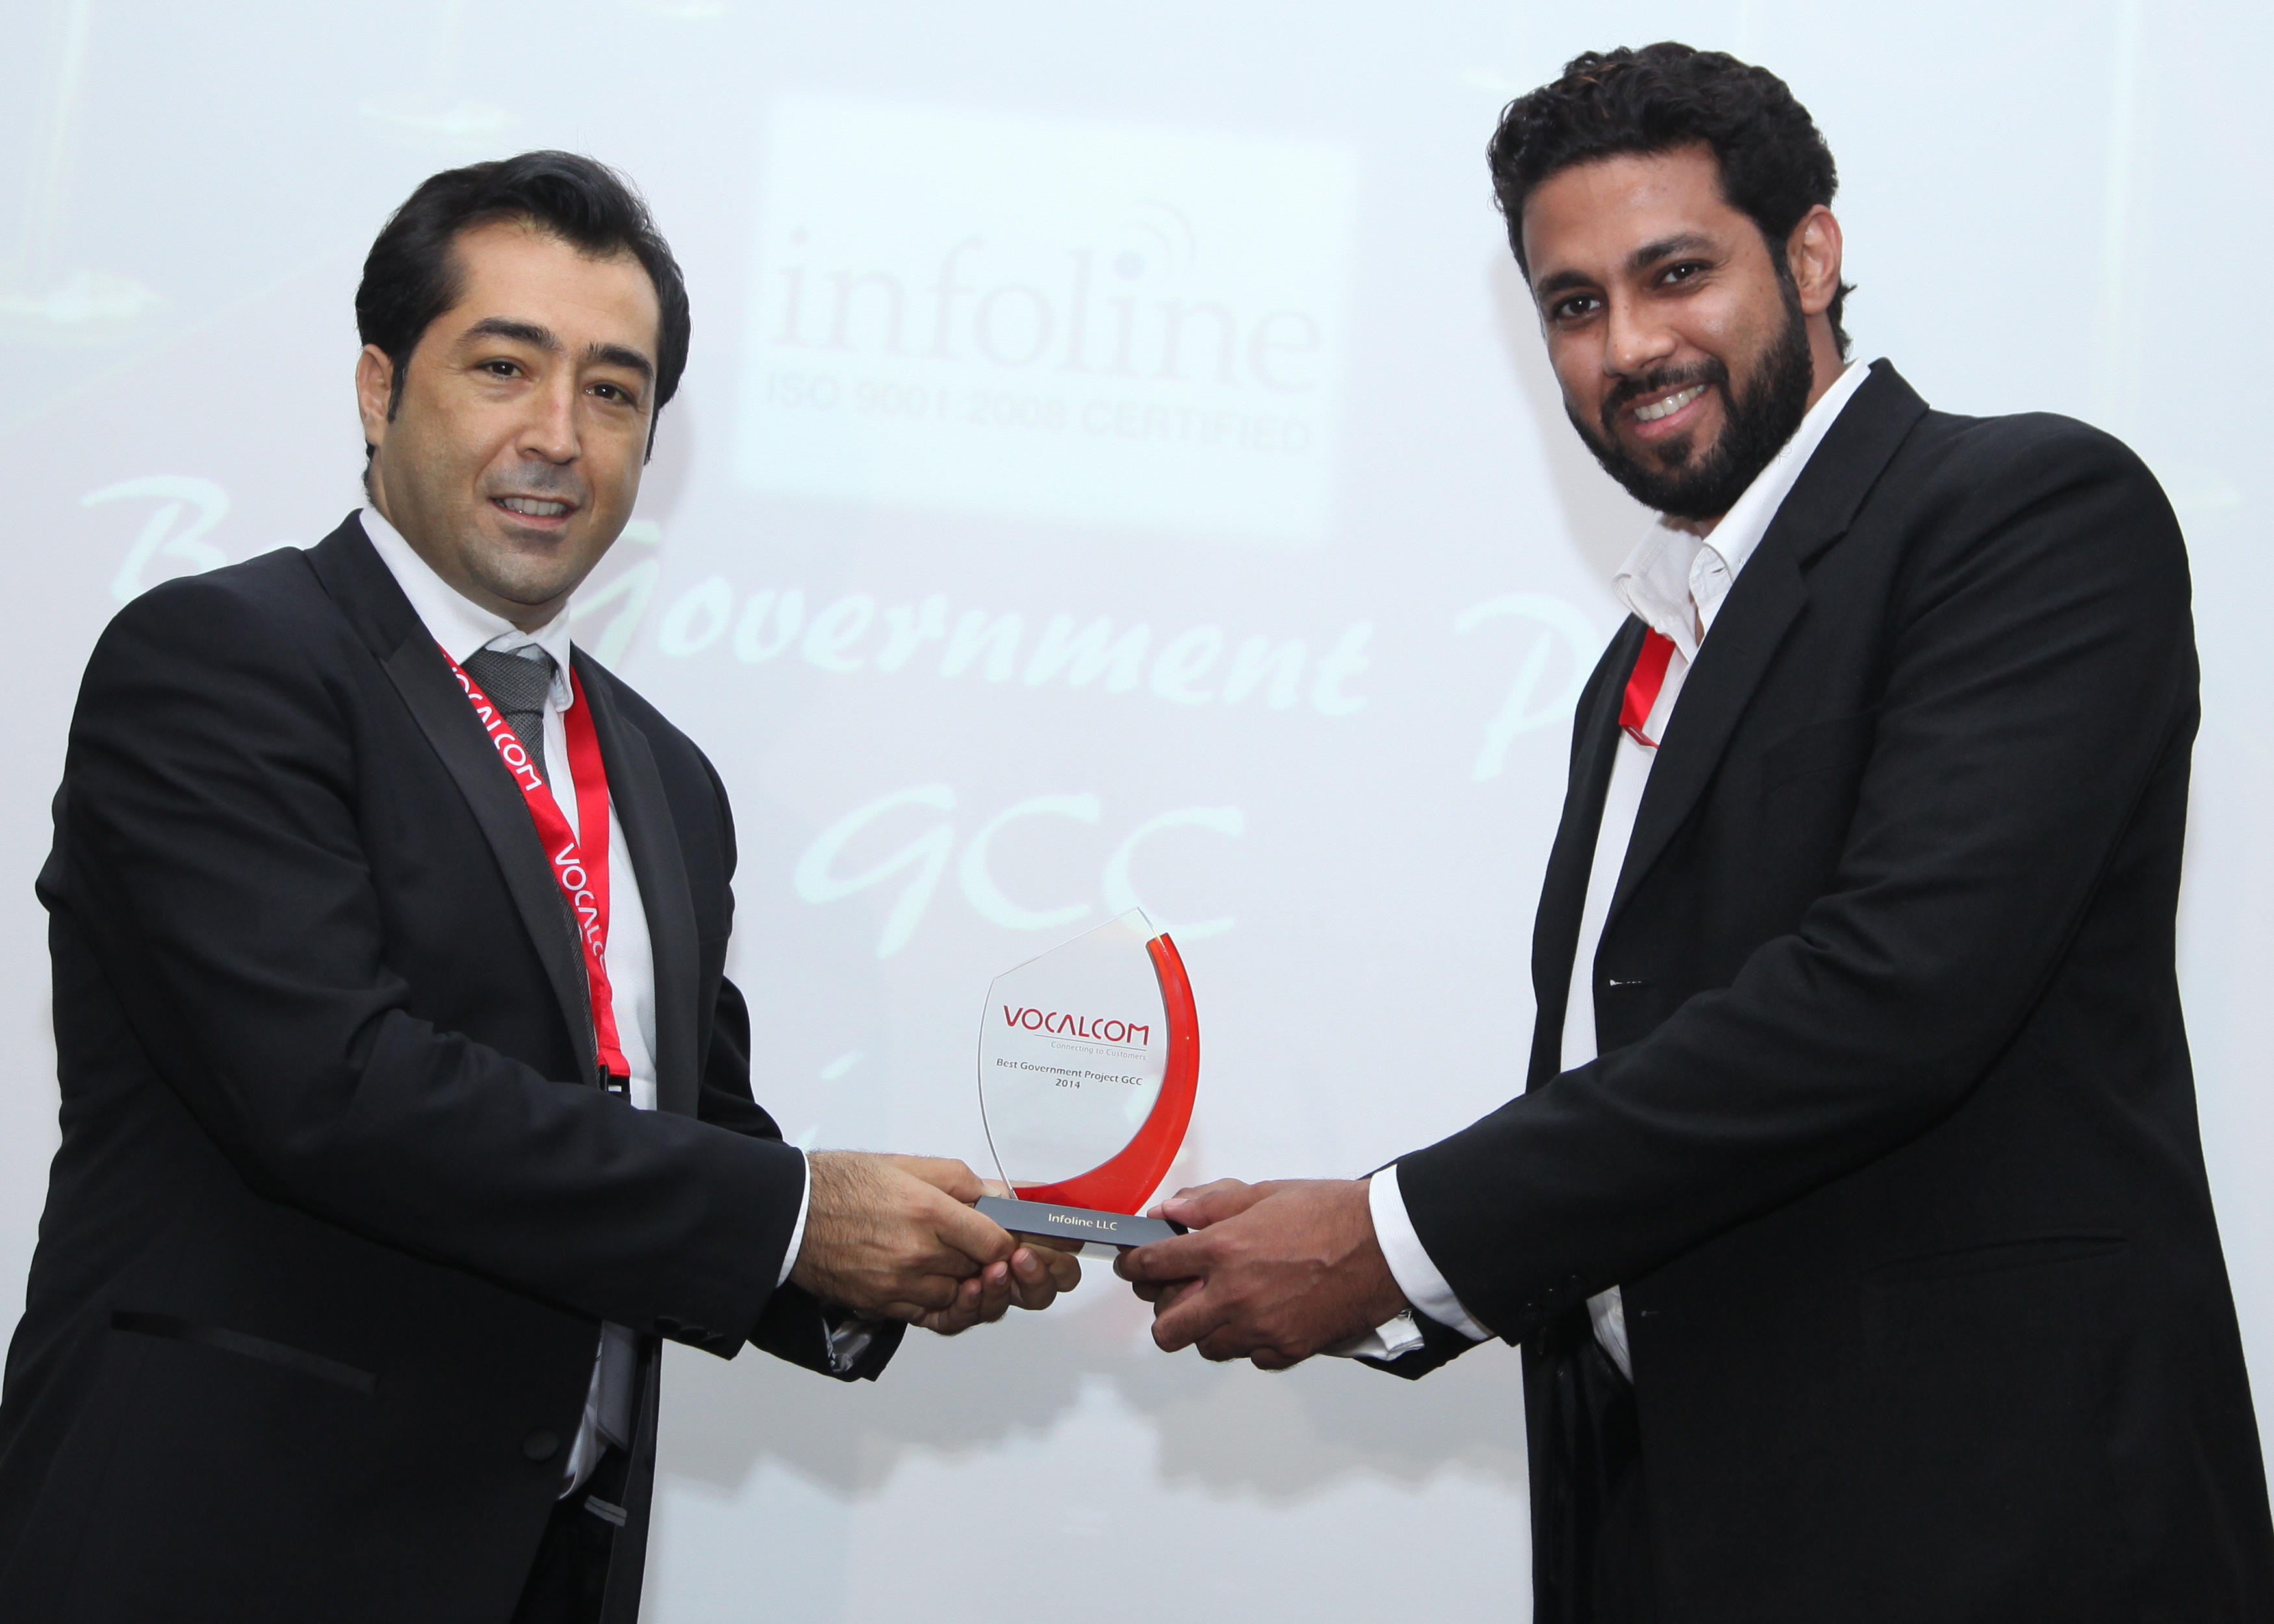 Infoline wins the best Government project award